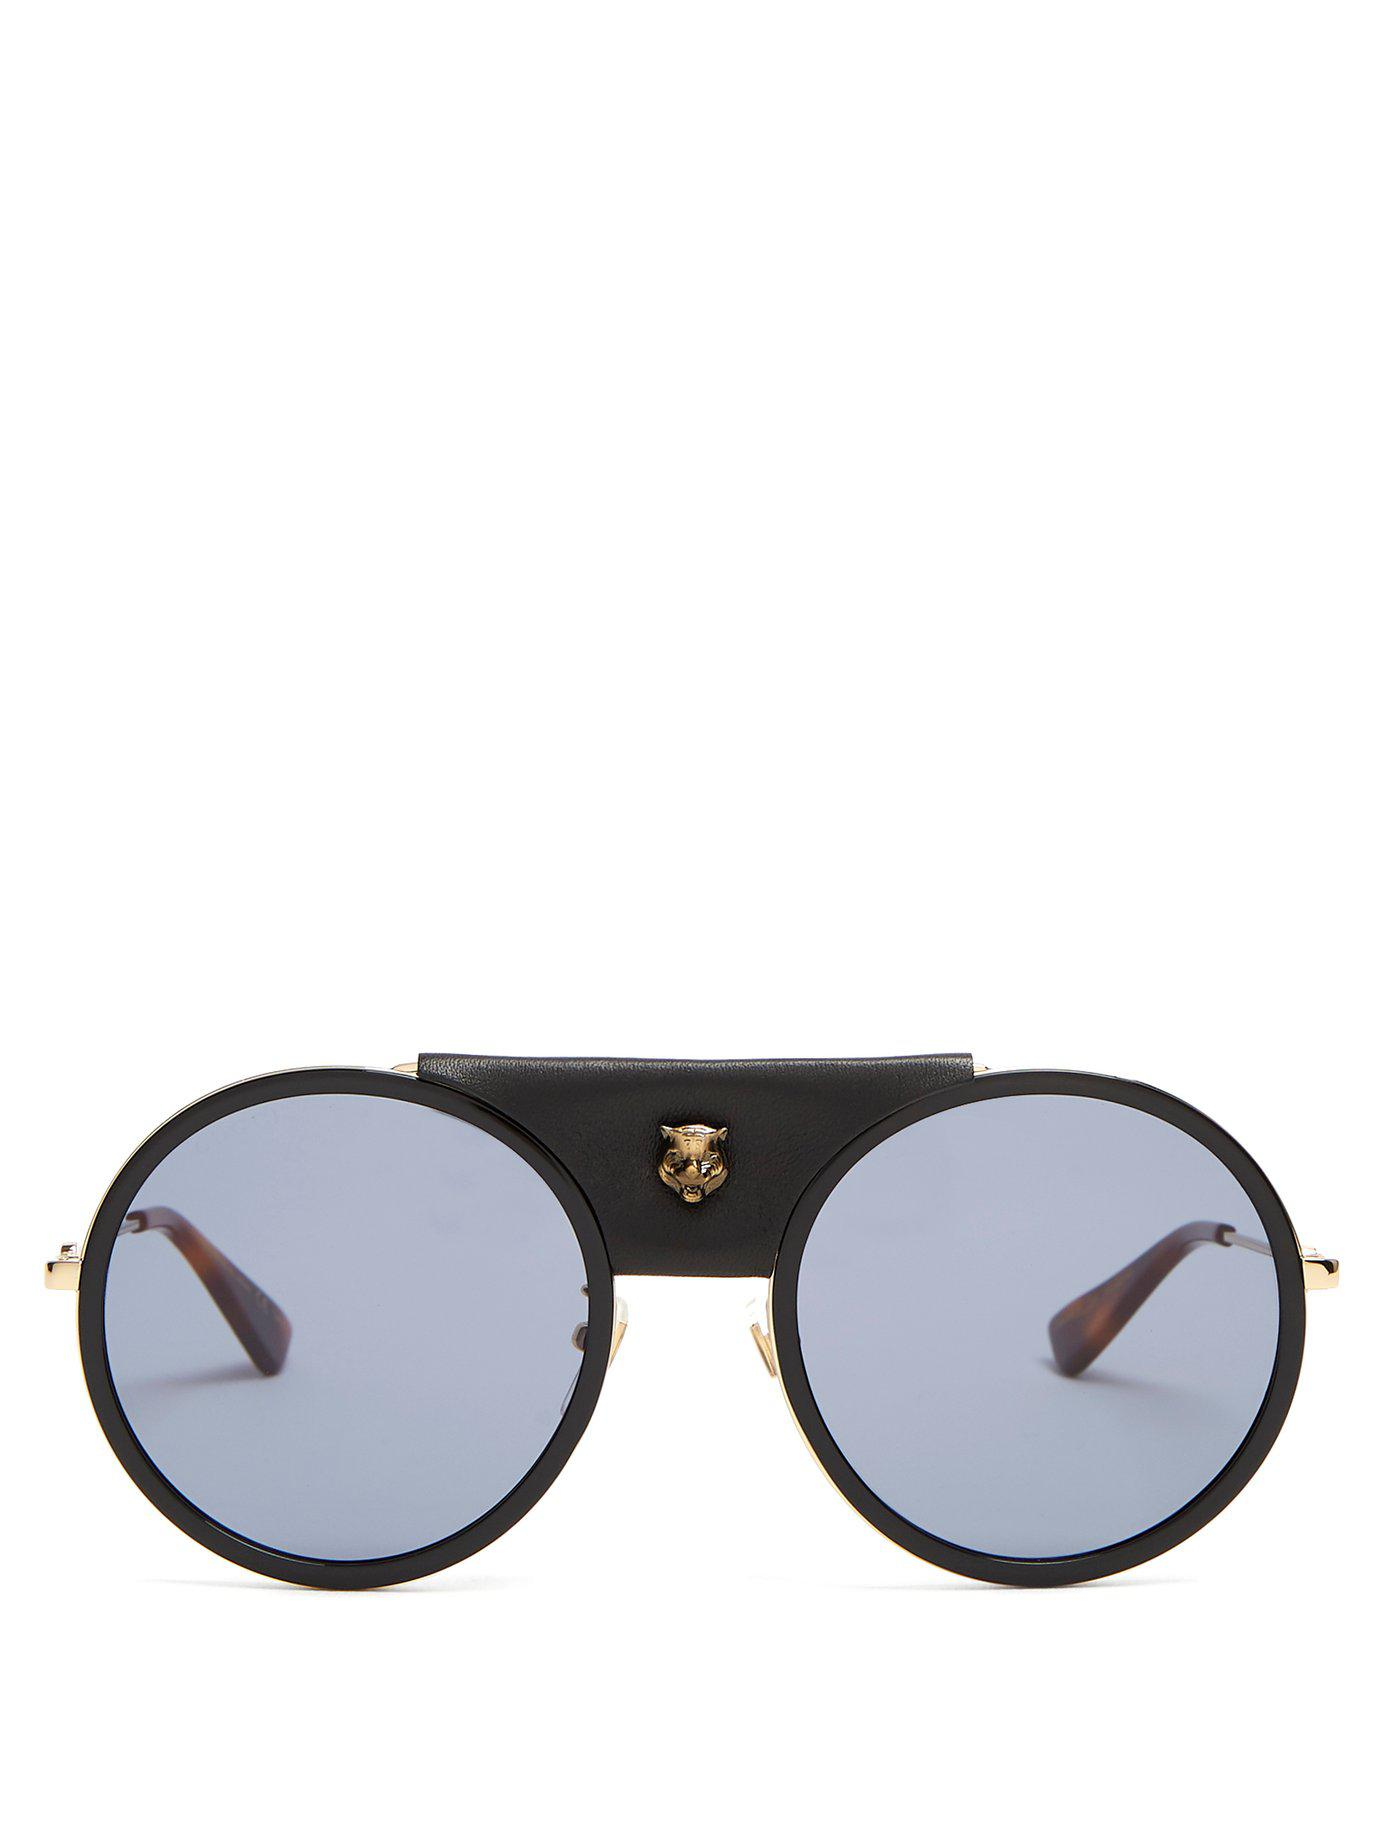 e9bf57adaa7 Lyst - Gucci Round Frame Leather Trimmed Metal Sunglasses in Black ...